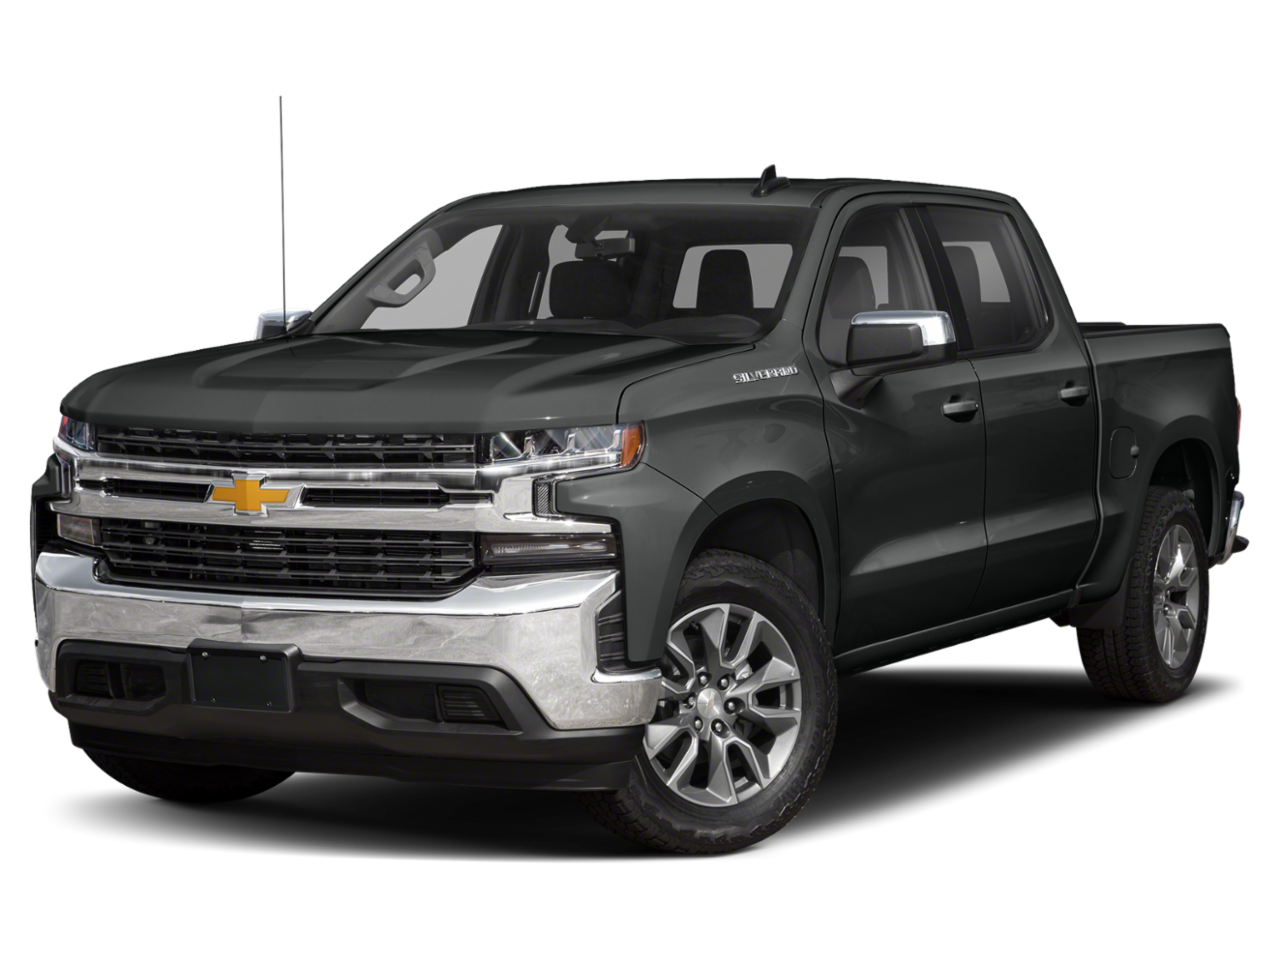 Hardy Chevrolet Gainesville Buford Flowery Branch And Braselton Chevrolet Dealer Alternative